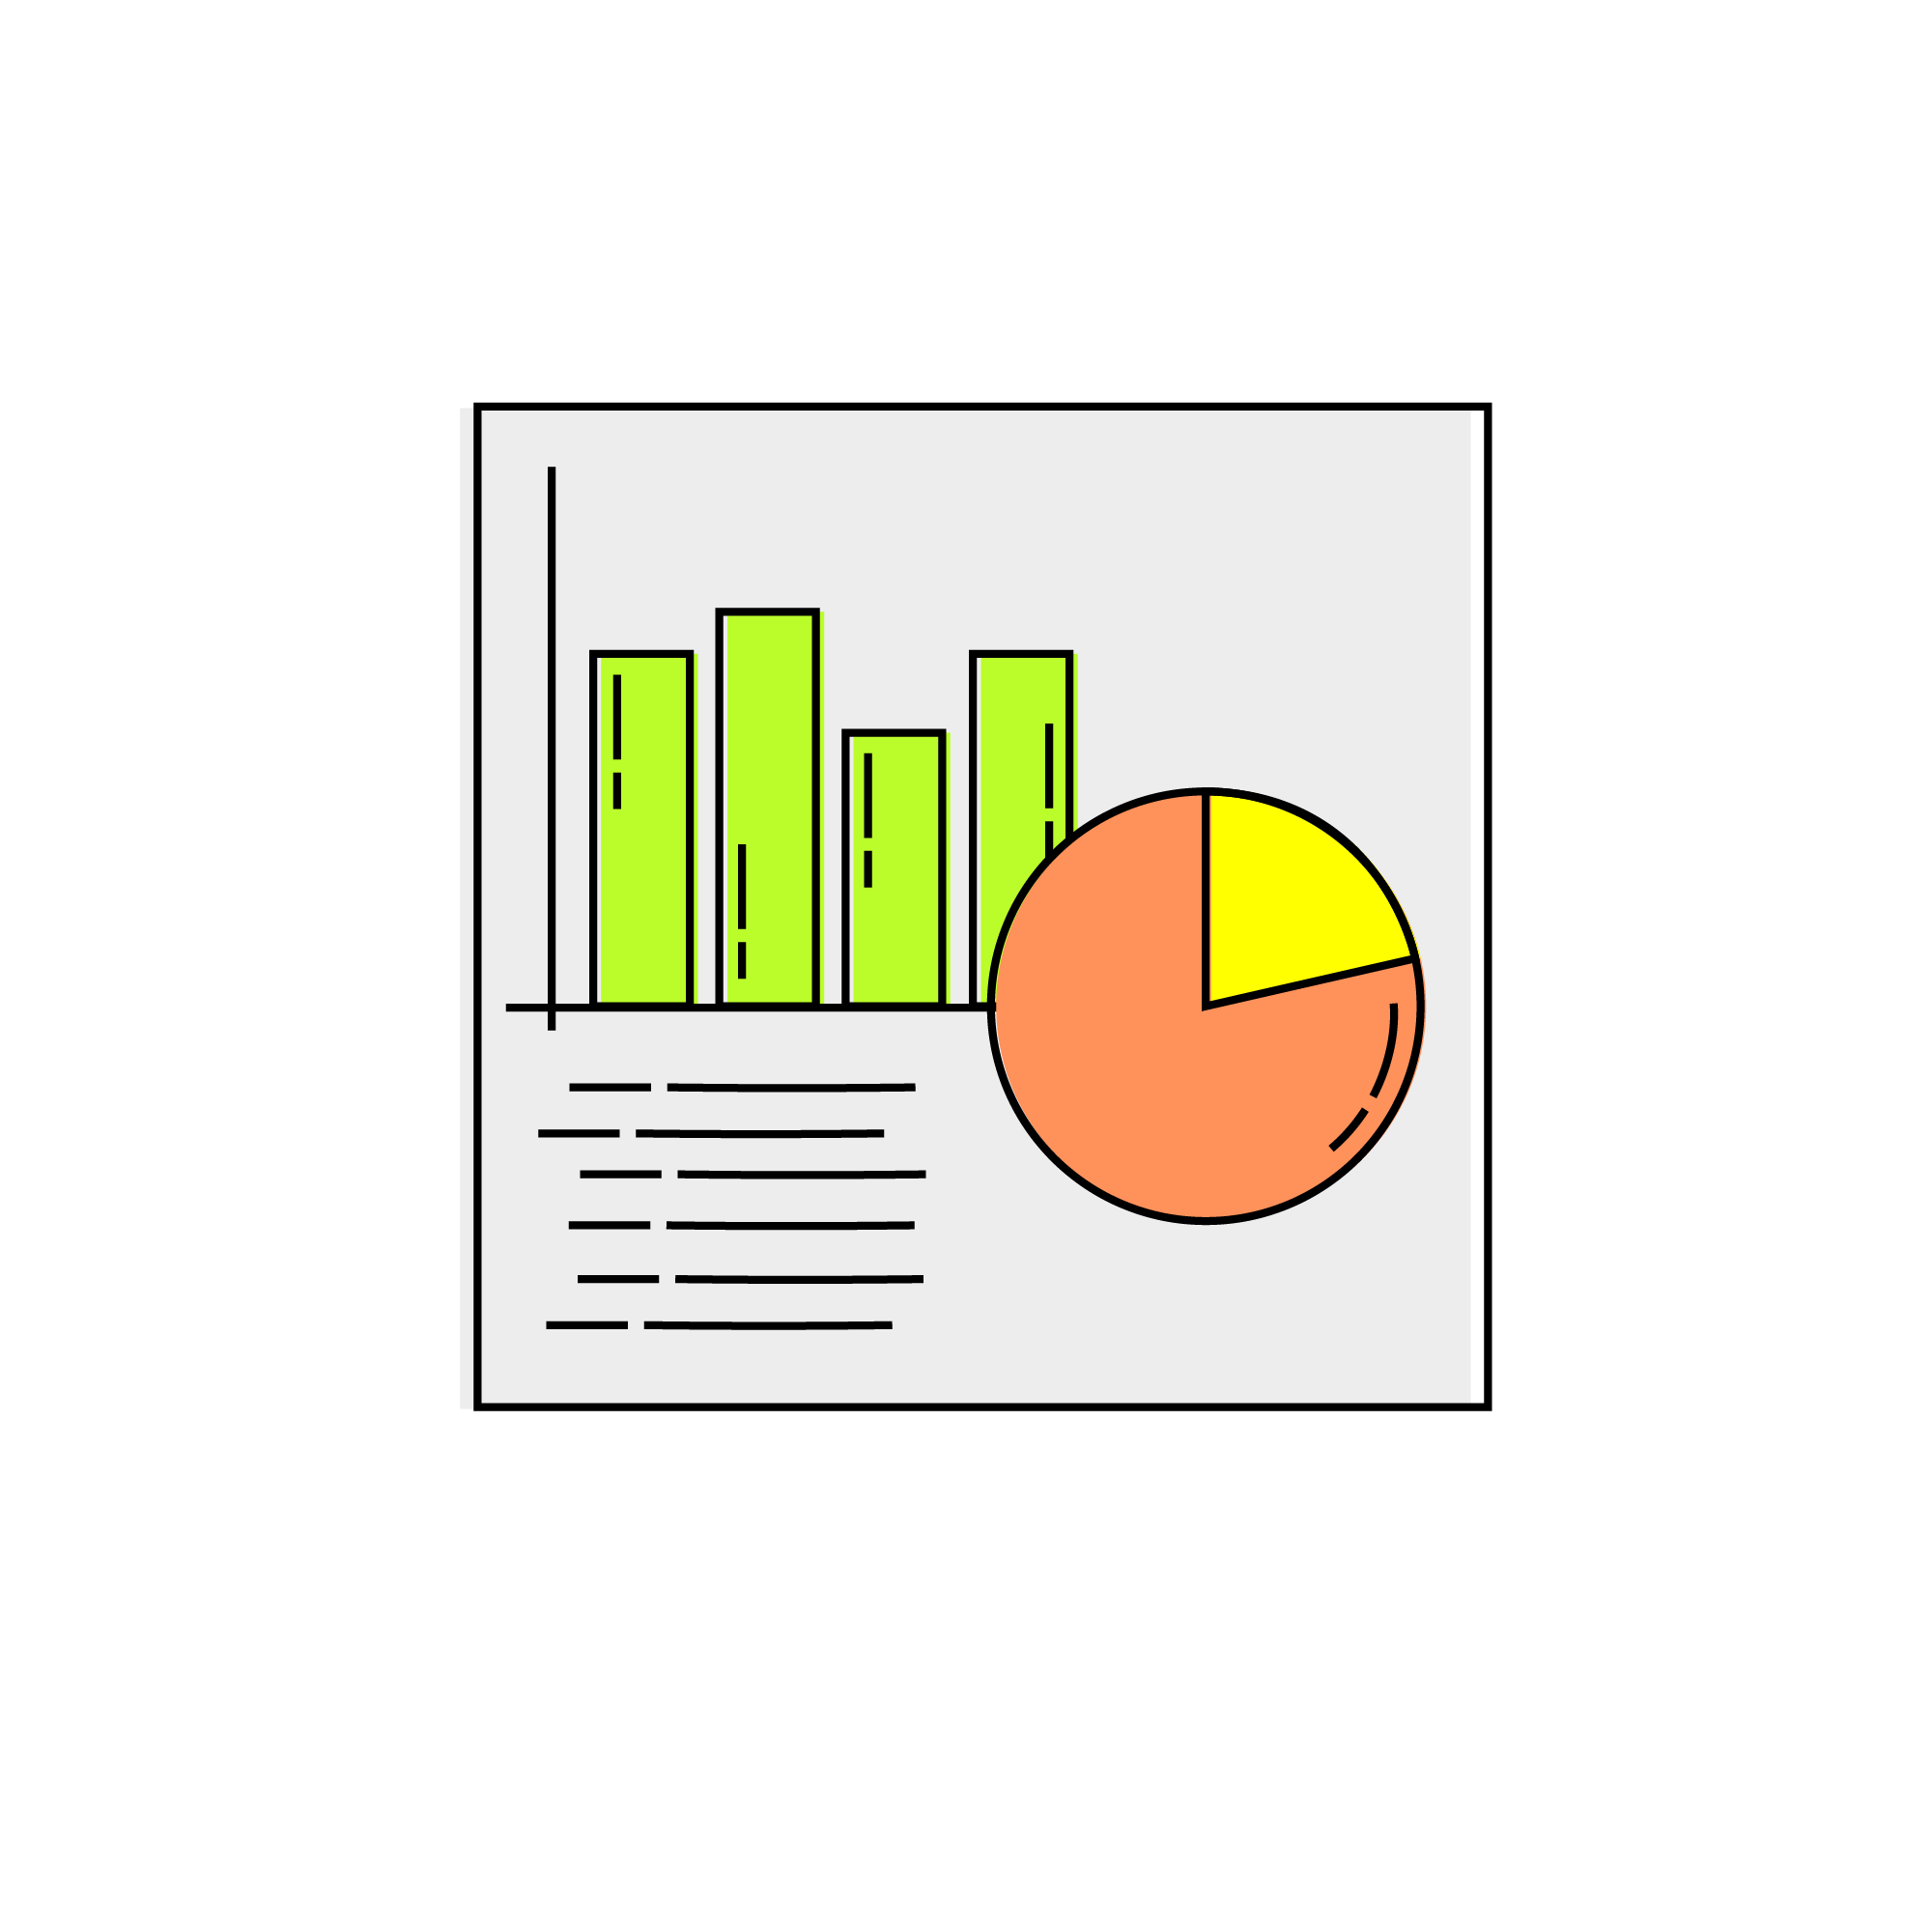 No matter how unfamiliar the terminology may be, all the information you need to answer graph-related questions will be right in front of you. These questions are set up precisely so that you can figure them out without any outside knowledge.